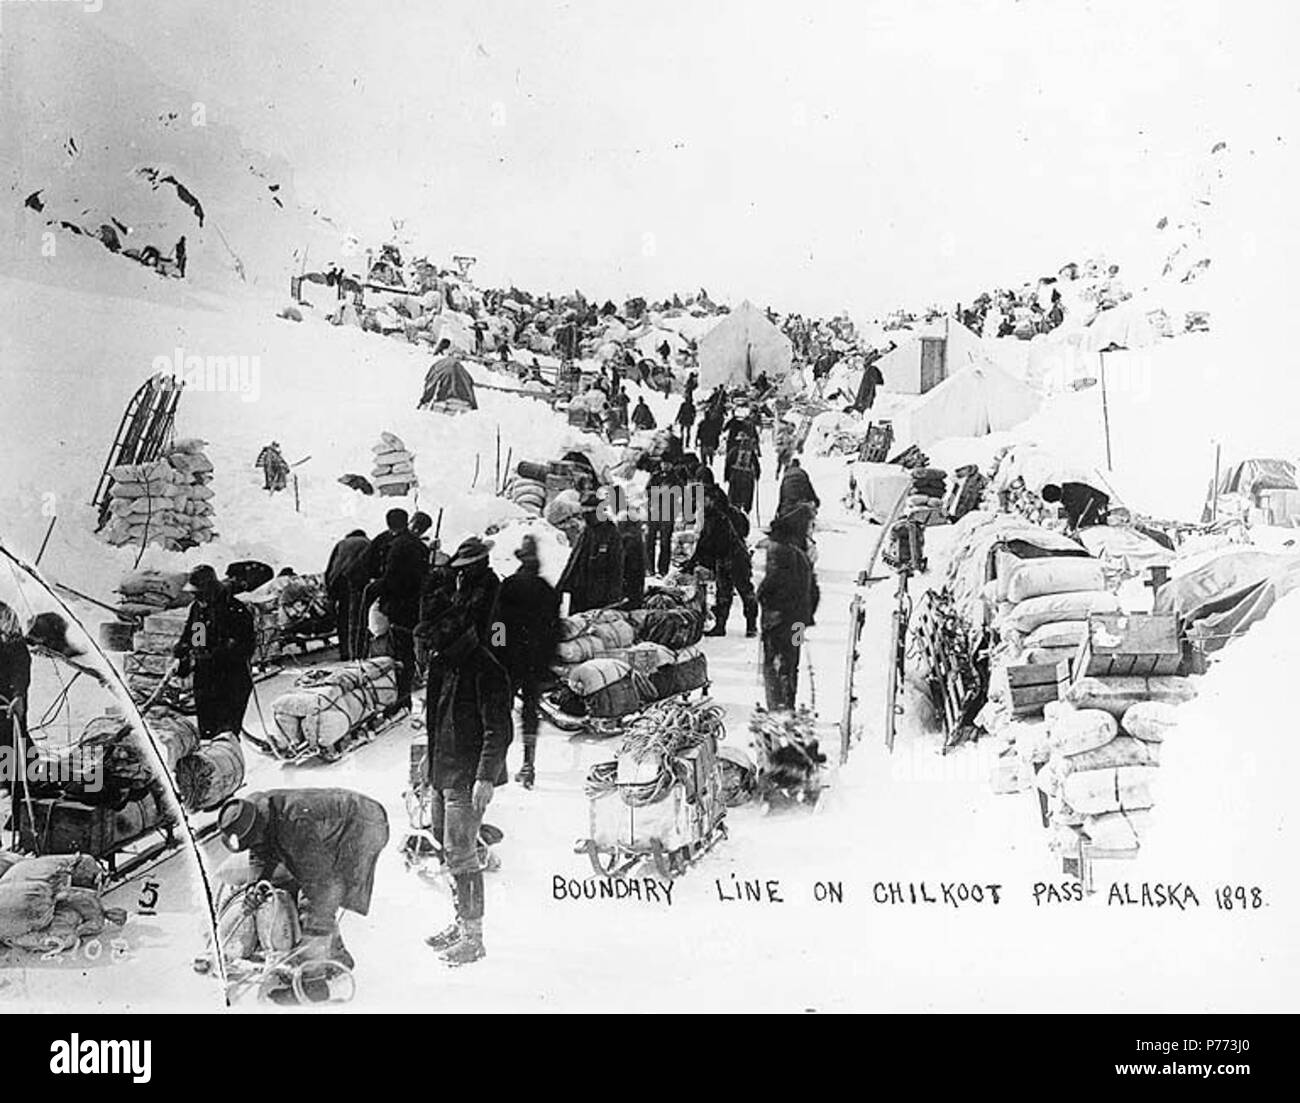 . English: Klondikers waiting in line for customs, Chilkoot Pass, Alaska, ca. 1898. English: Shows Klondikers waiting to be checked by customs and the North West Mounted Police at the Canada - United States boundry line . Caption on image: 'Boundry line on Chilkoot Pass, Alaska' Similiar to Hegg 236 with caption: 'Chilkoot Summit, March 1898' . Klondike Gold Rush. Subjects (LCTGM): Sleds & sleighs--Alaska--Chilkoot Pass; Tents--Alaska--Chilkoot Pass Subjects (LCSH): Chilkoot Pass (Alaska); Mountain passes--Alaska; Chilkoot Trail; Trails--Alaska; North West Mounted Police (Canada)  . circa 1898 - Stock Image